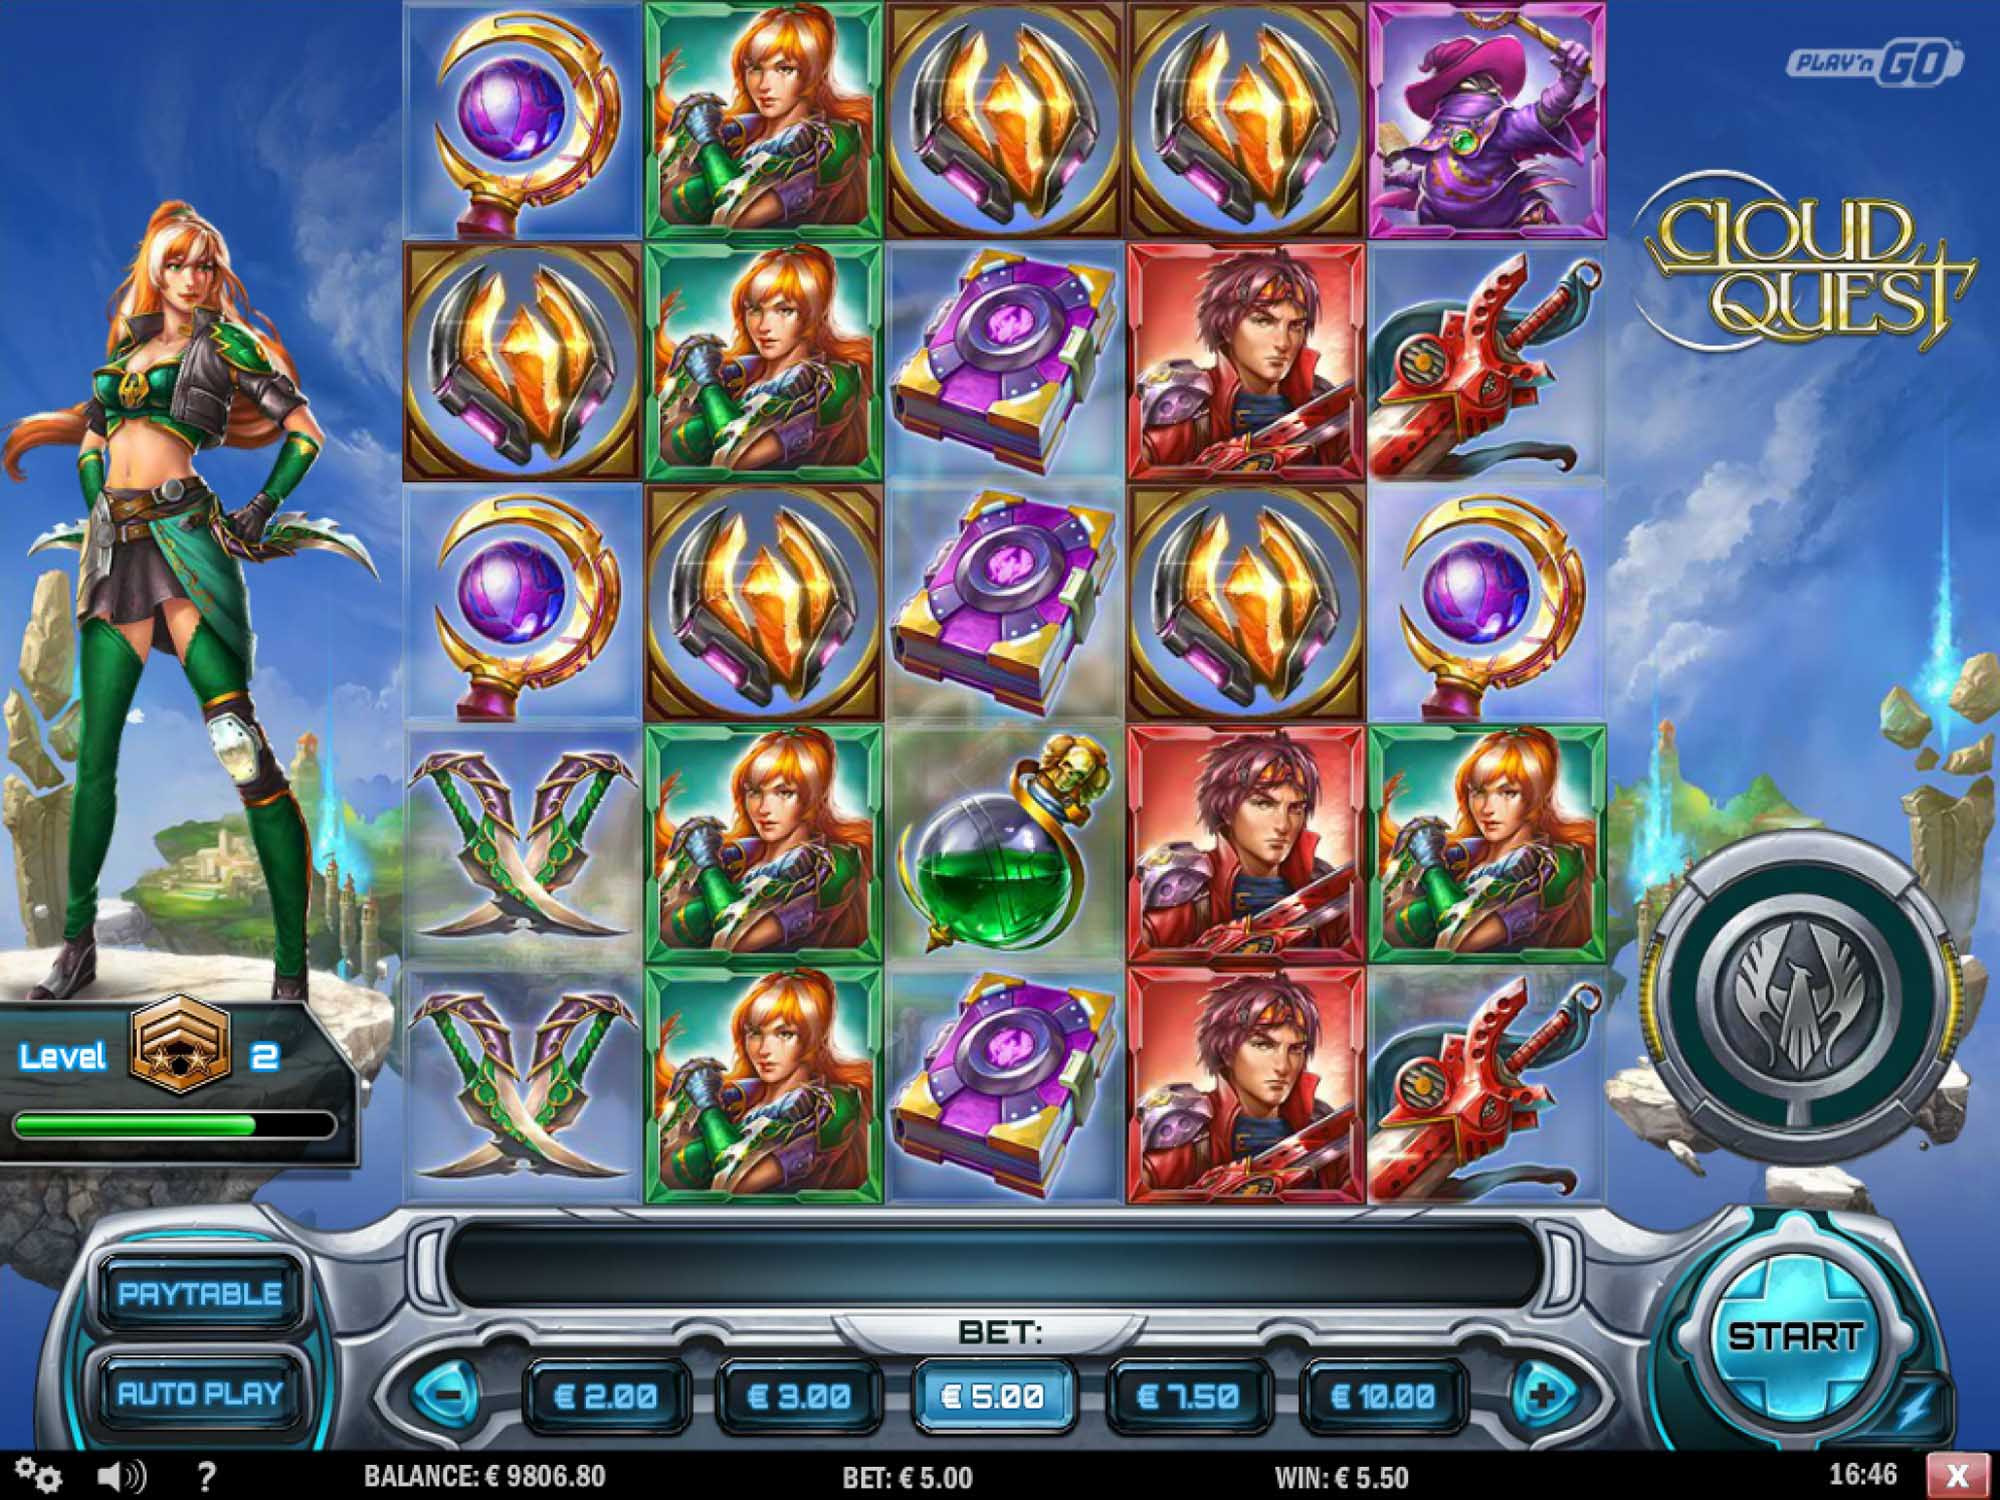 Cloud Quest at netbet casino